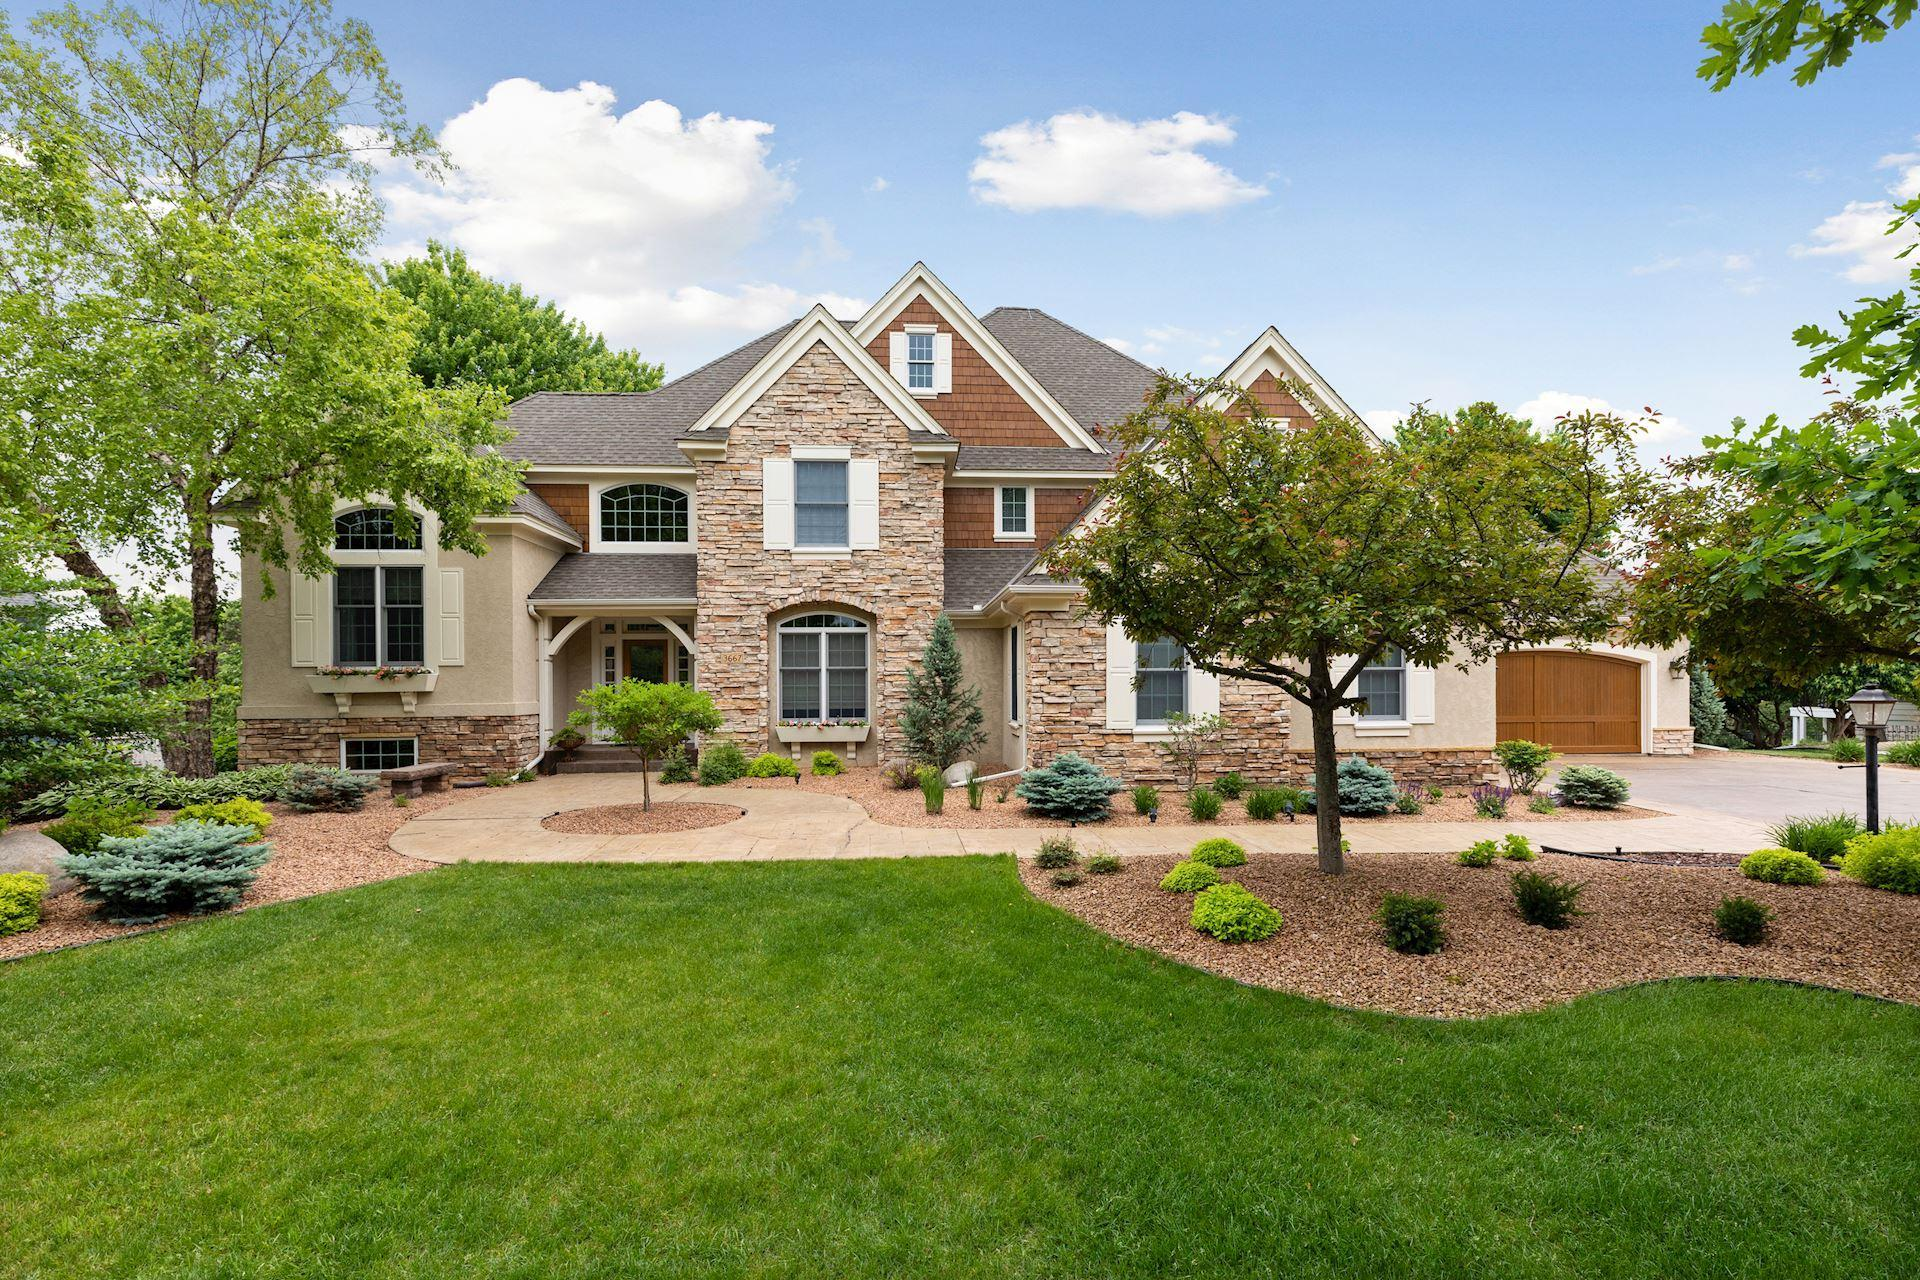 3667 Fairway Drive Property Photo - Woodbury, MN real estate listing